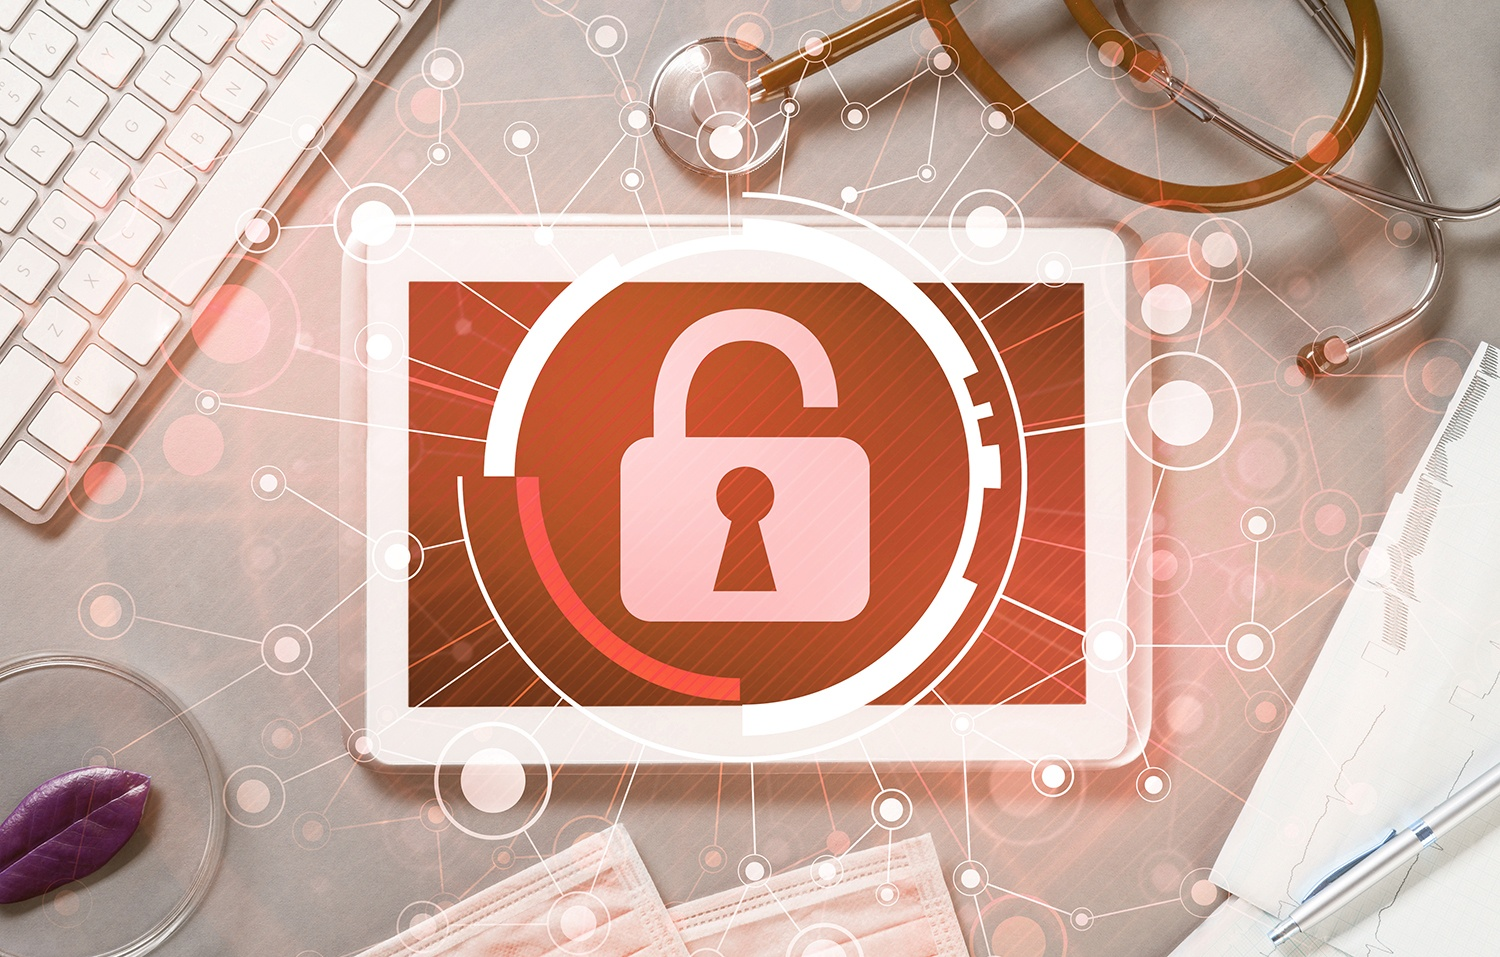 Medical Device Security Needs a Lifecycle Approach